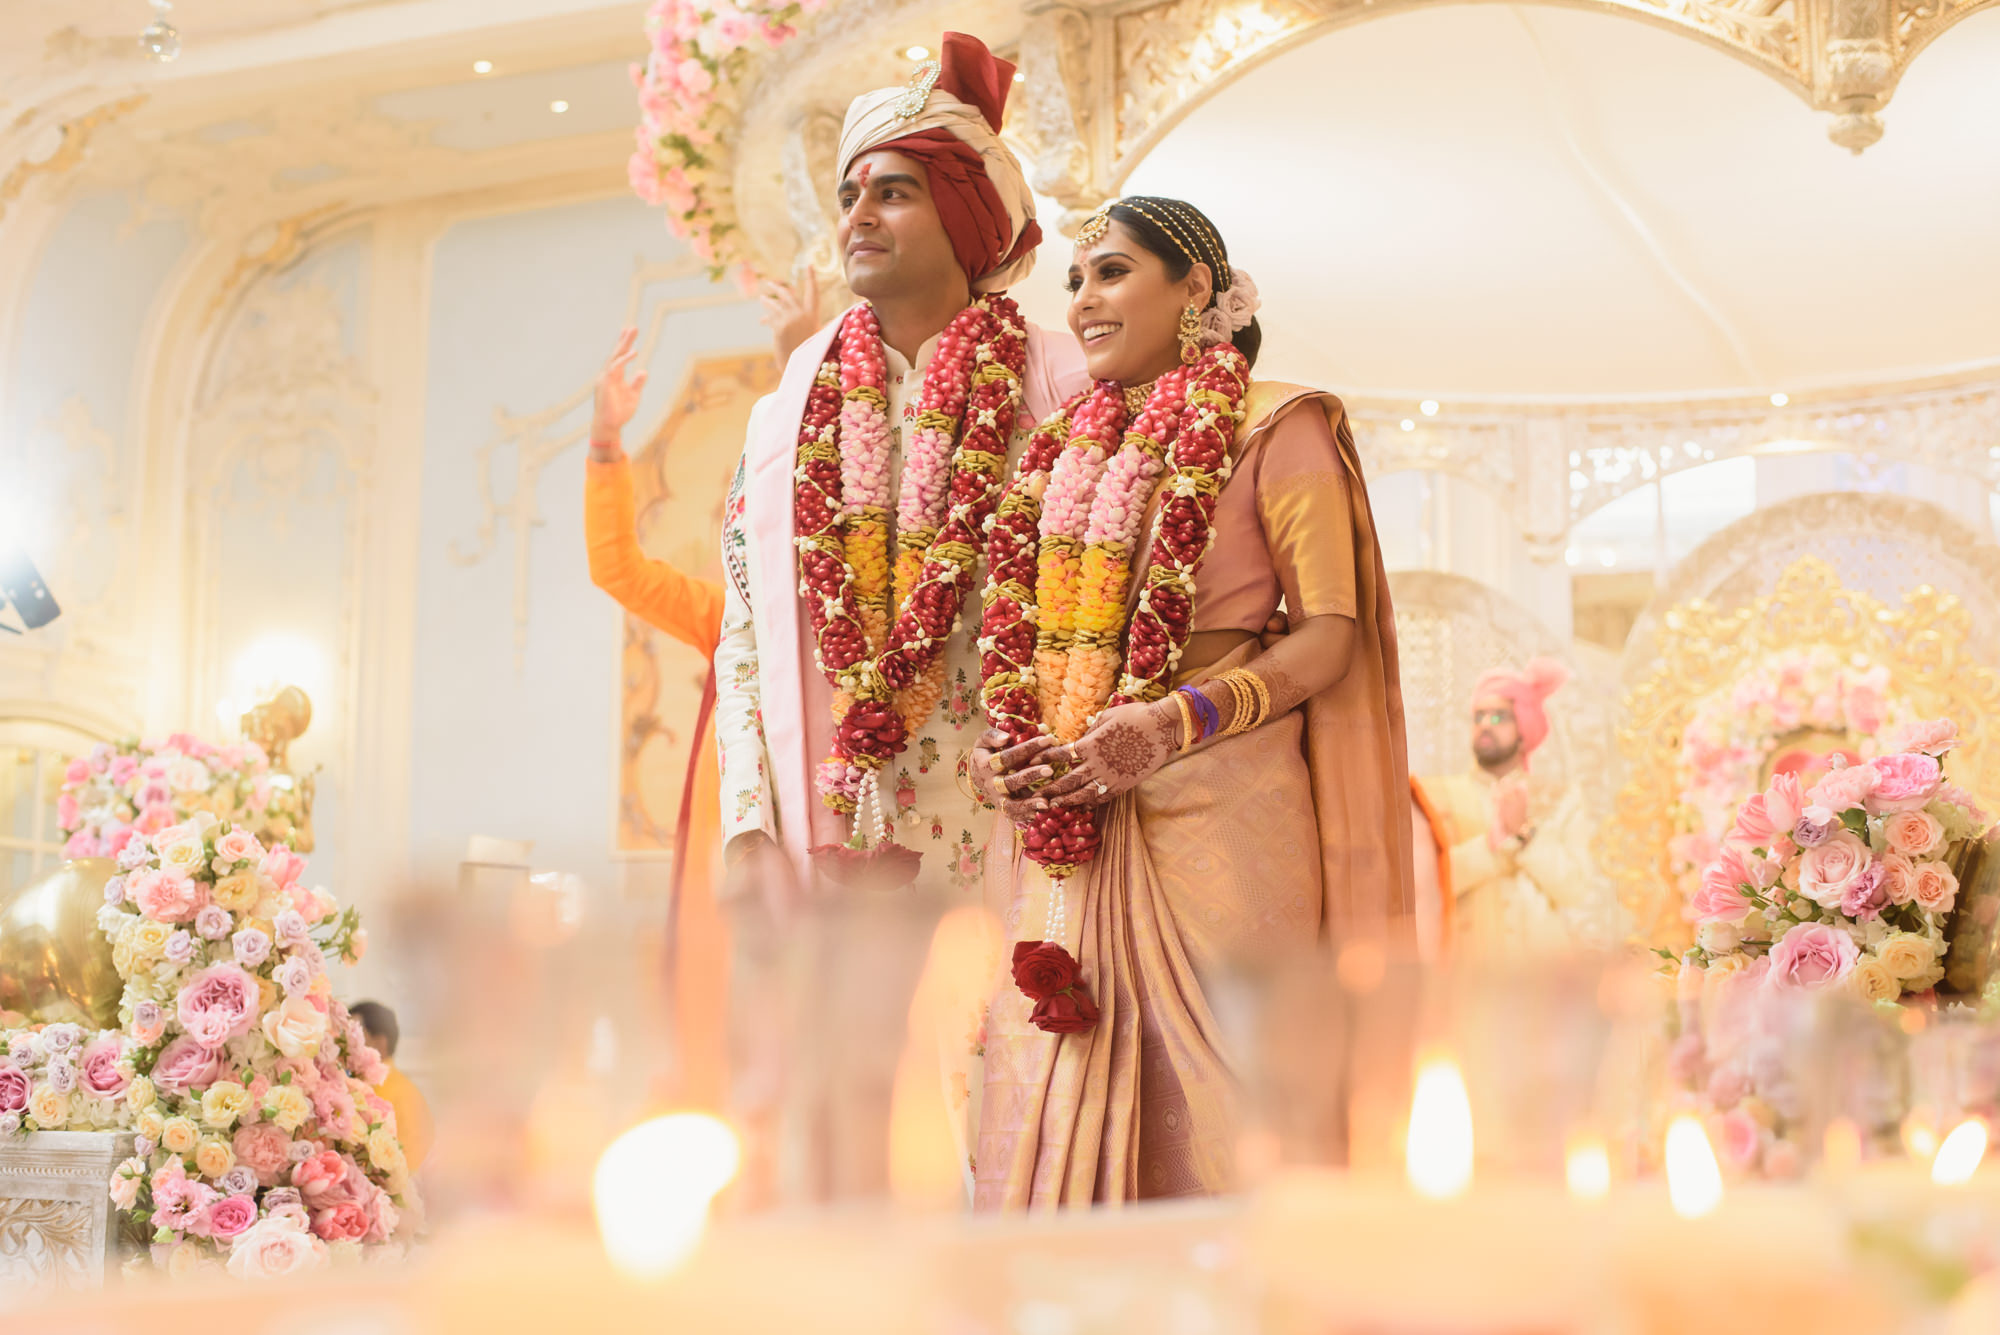 Tamil Gujrati hindu wedding photography photographer london the savoy -66.jpg